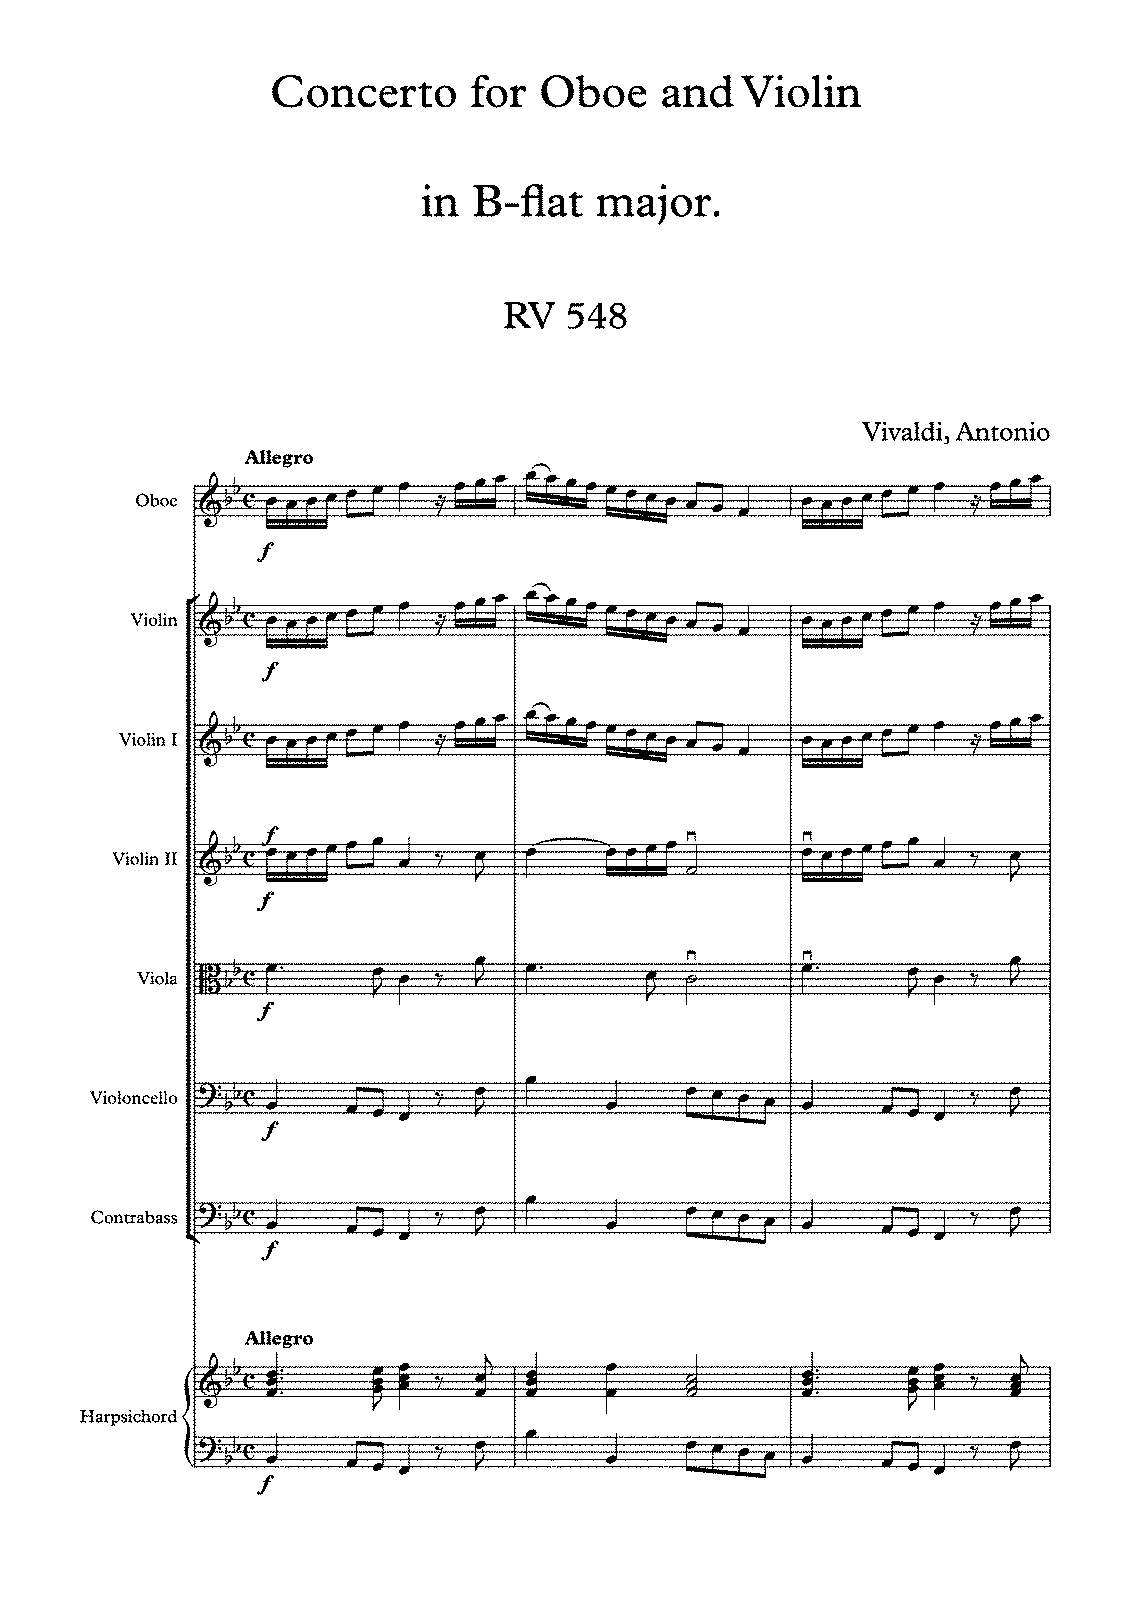 PMLP98600-Antonio Vivaldi - Concerto for Oboe and Violin in B-flat major, RV 548.pdf